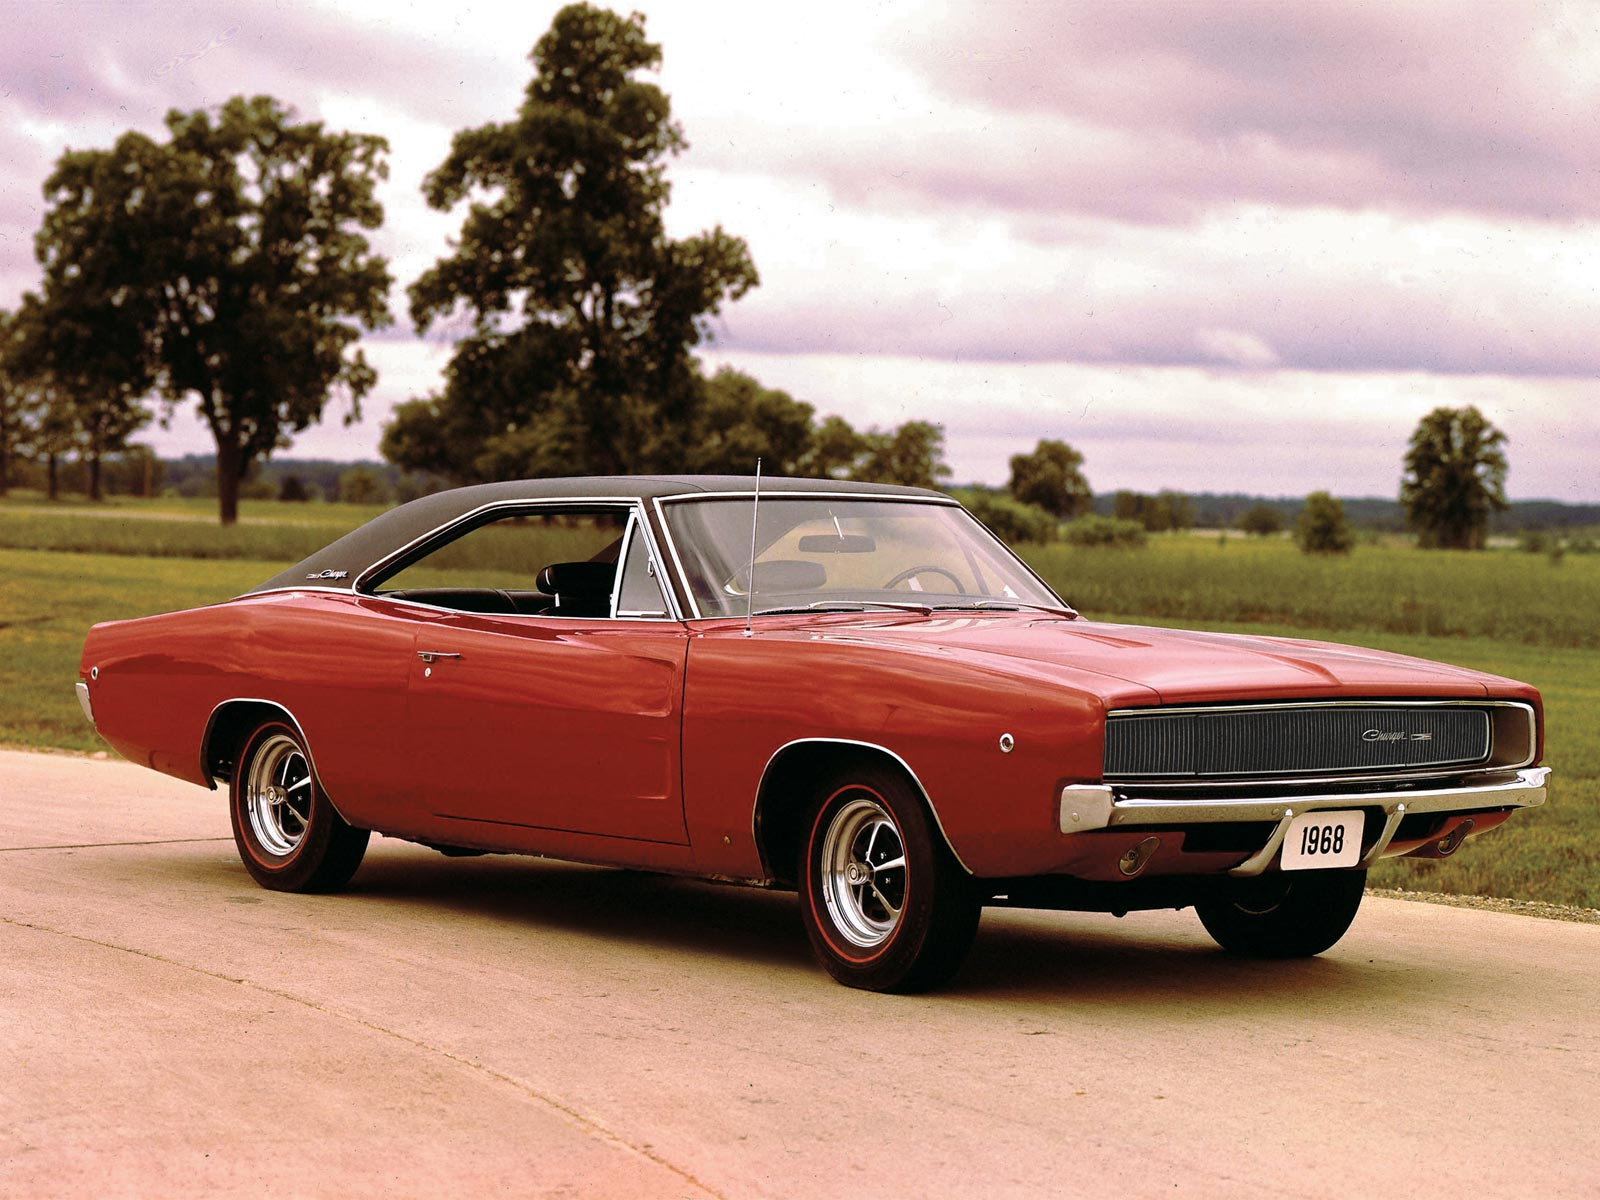 1968 – 1970 Dodge Charger